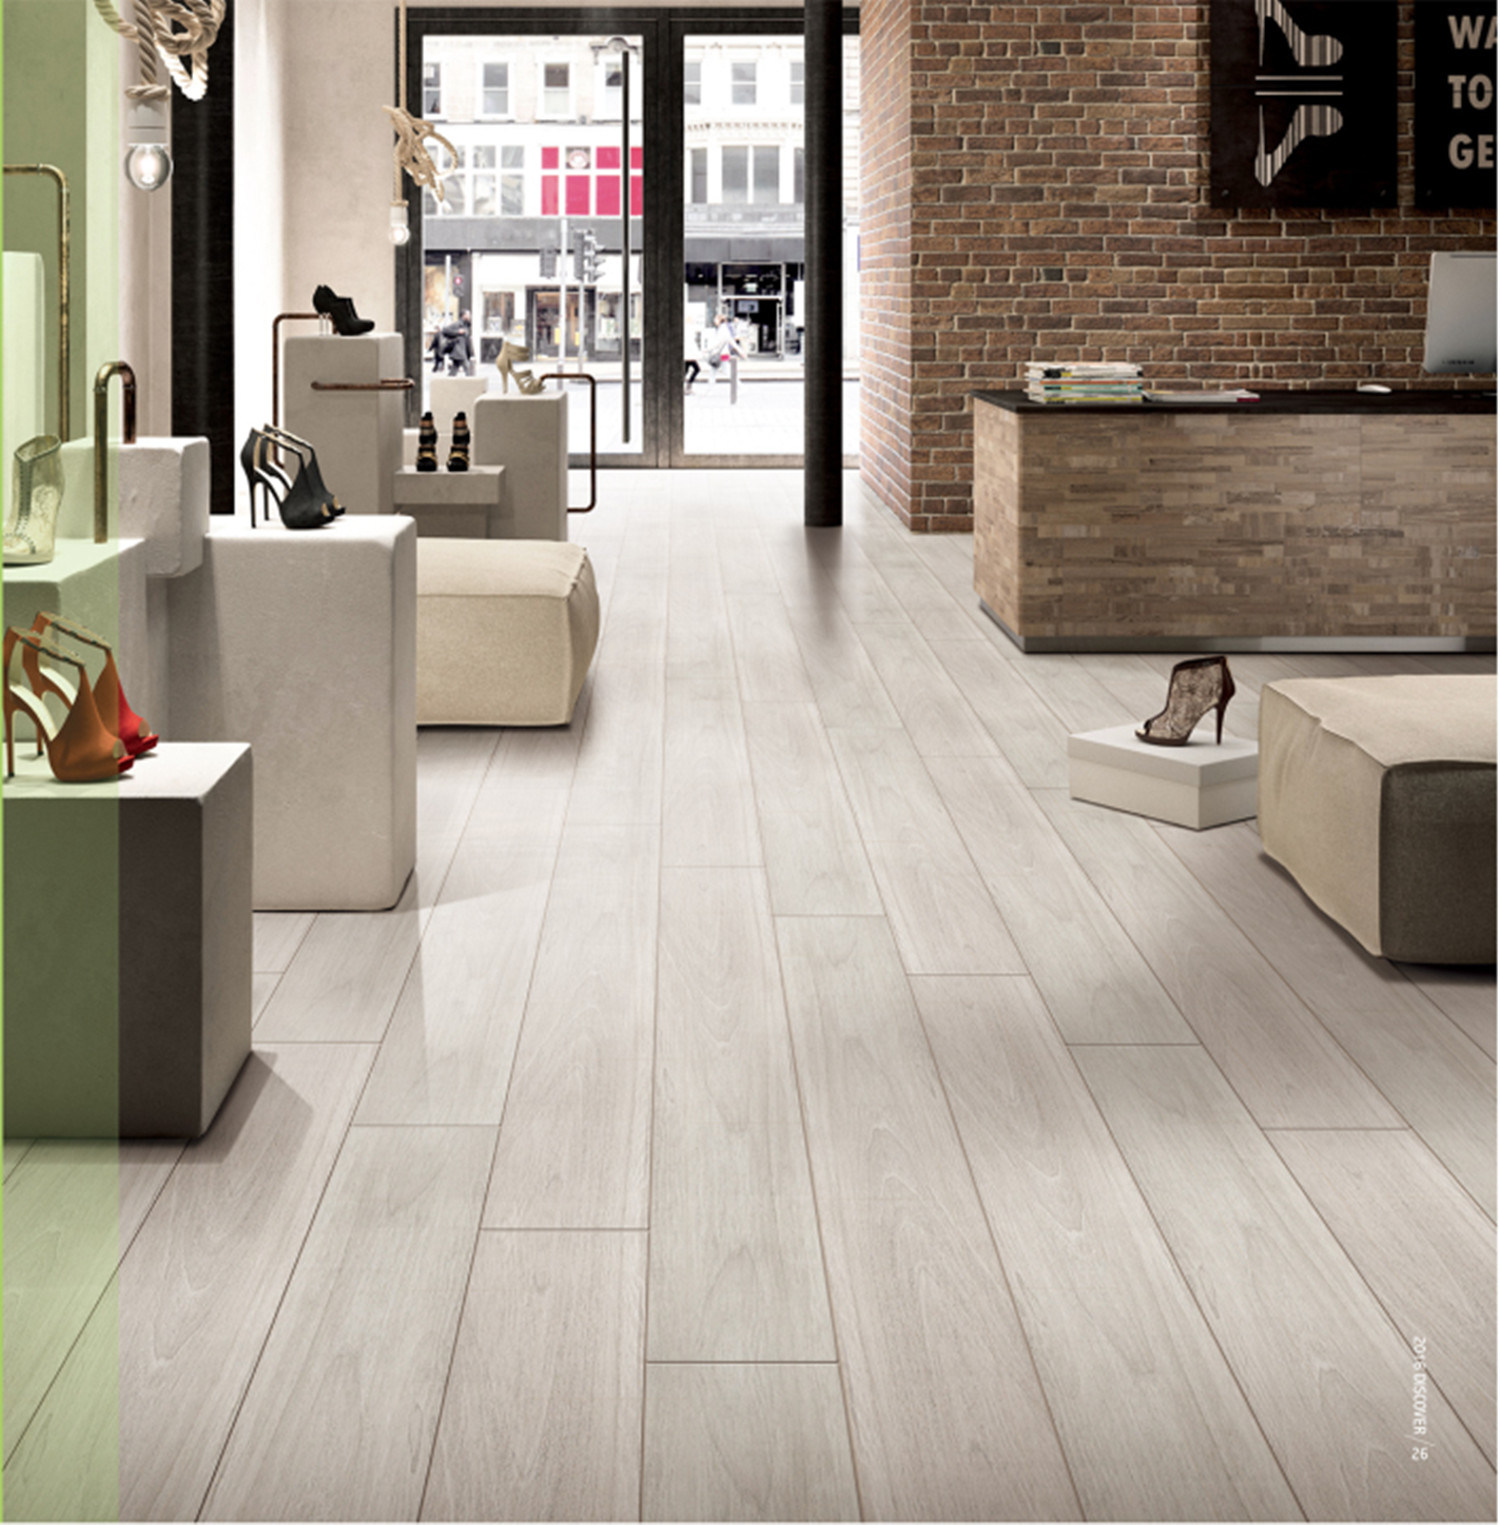 China New Timber Wood Glazed Porcelain Tile for Wall and Floor LF01